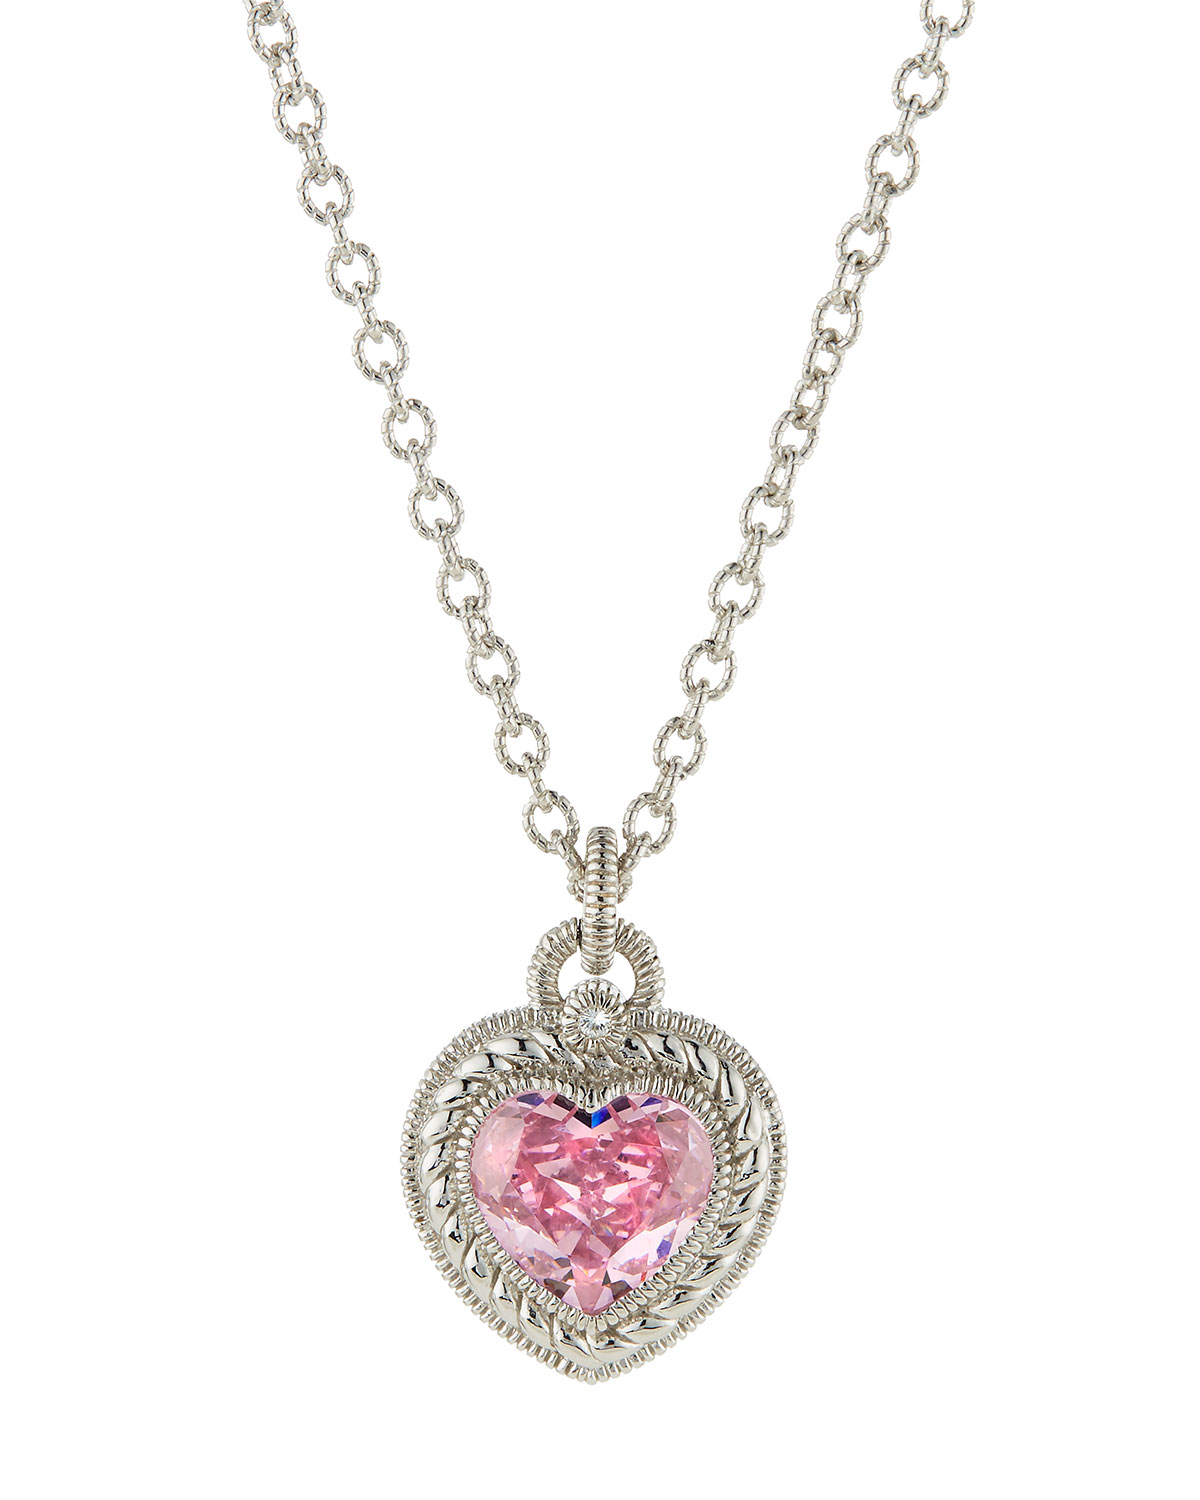 Lyst judith ripka pink crystal heart pendant necklace in metallic gallery aloadofball Image collections